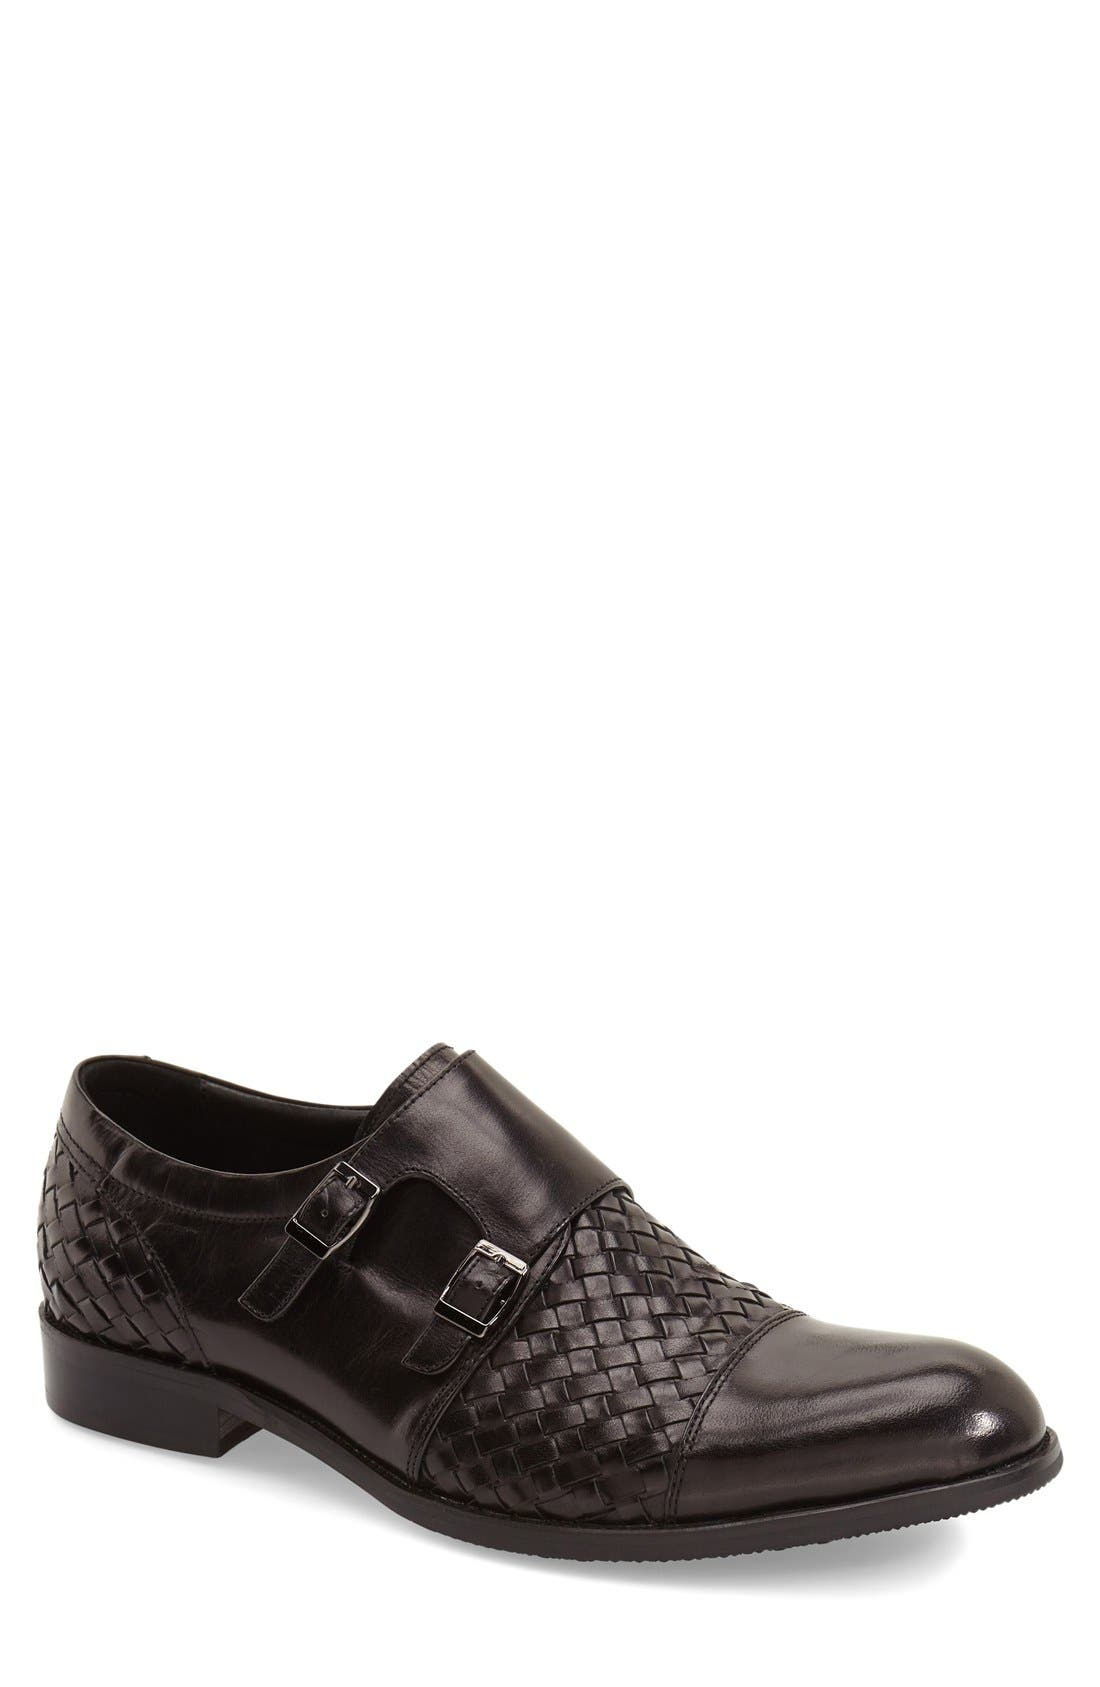 Zanzara 'Mahler' Monk Strap Shoe (Men)